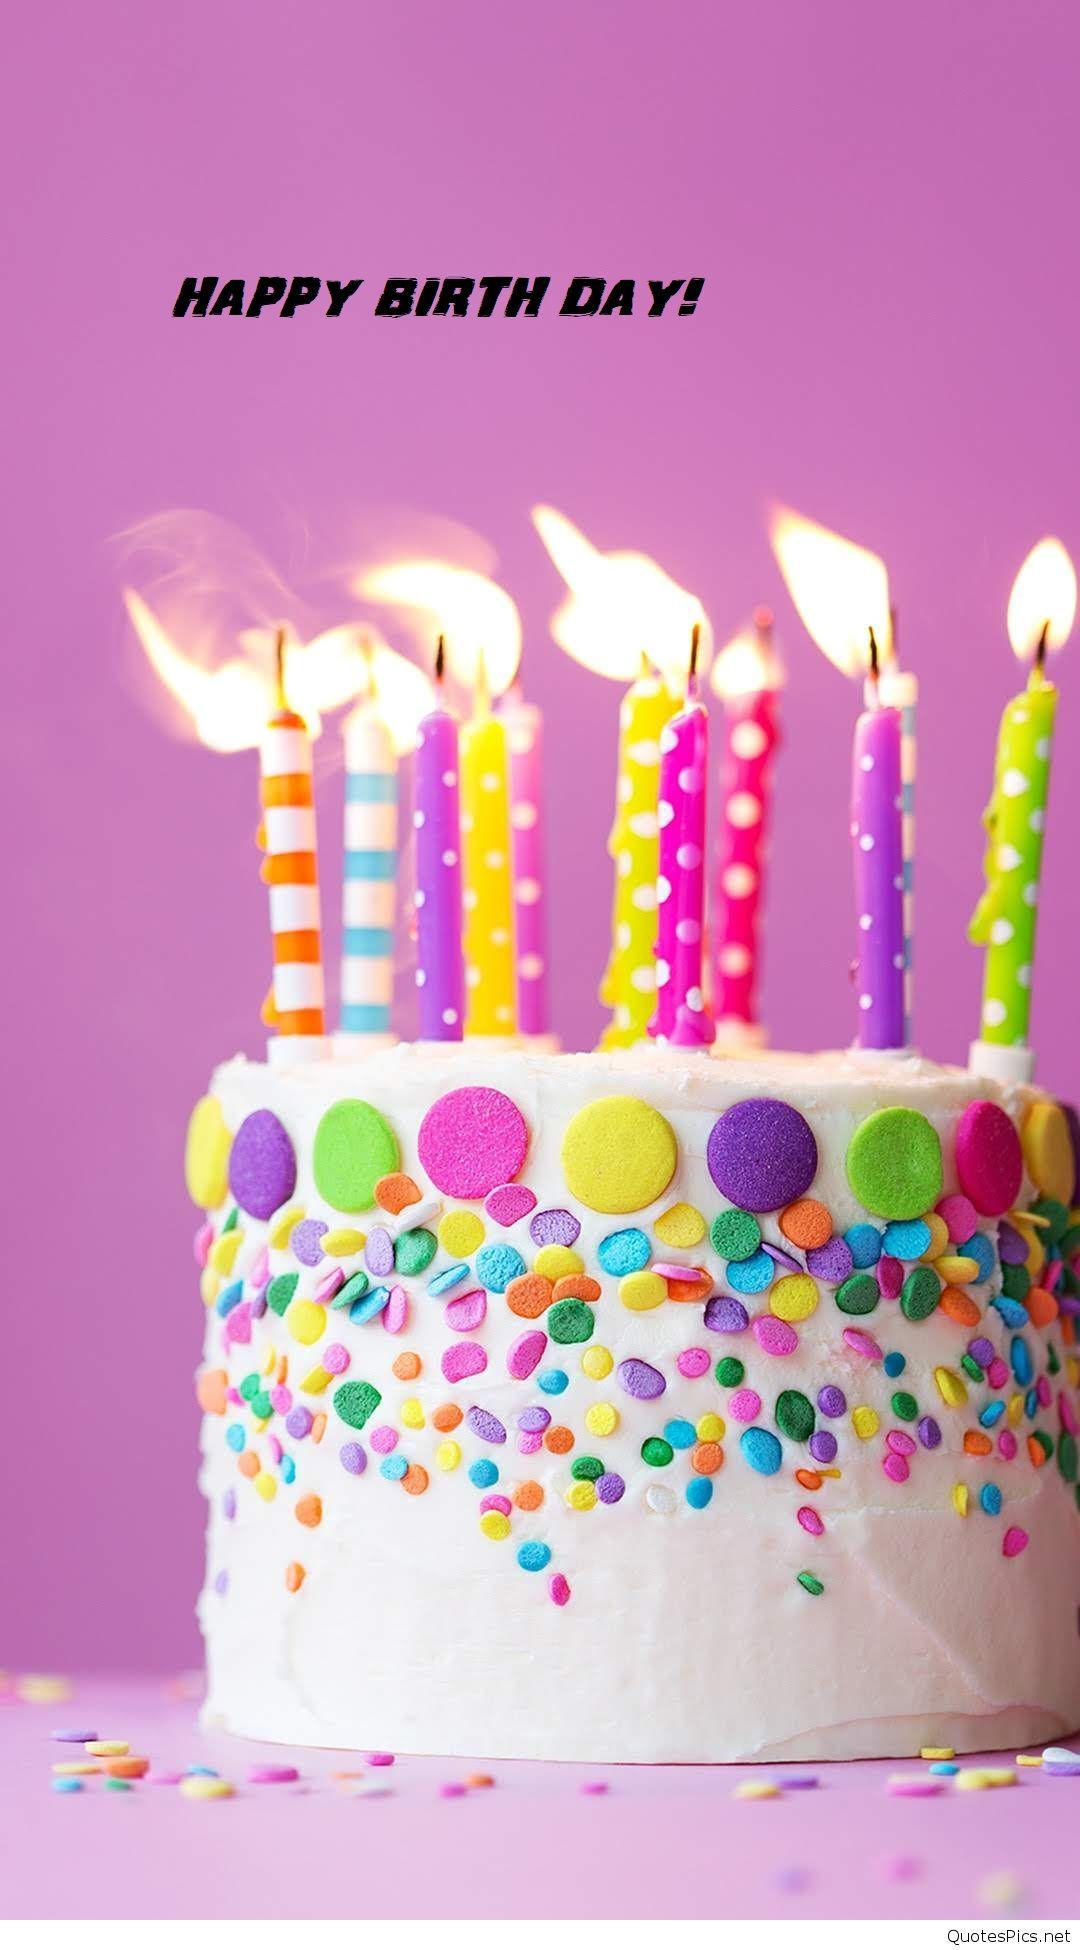 Best ideas about Birthday Cake Wallpaper . Save or Pin 30 Cake Wallpaper Birthday Cake Wallpaper in HD Now.